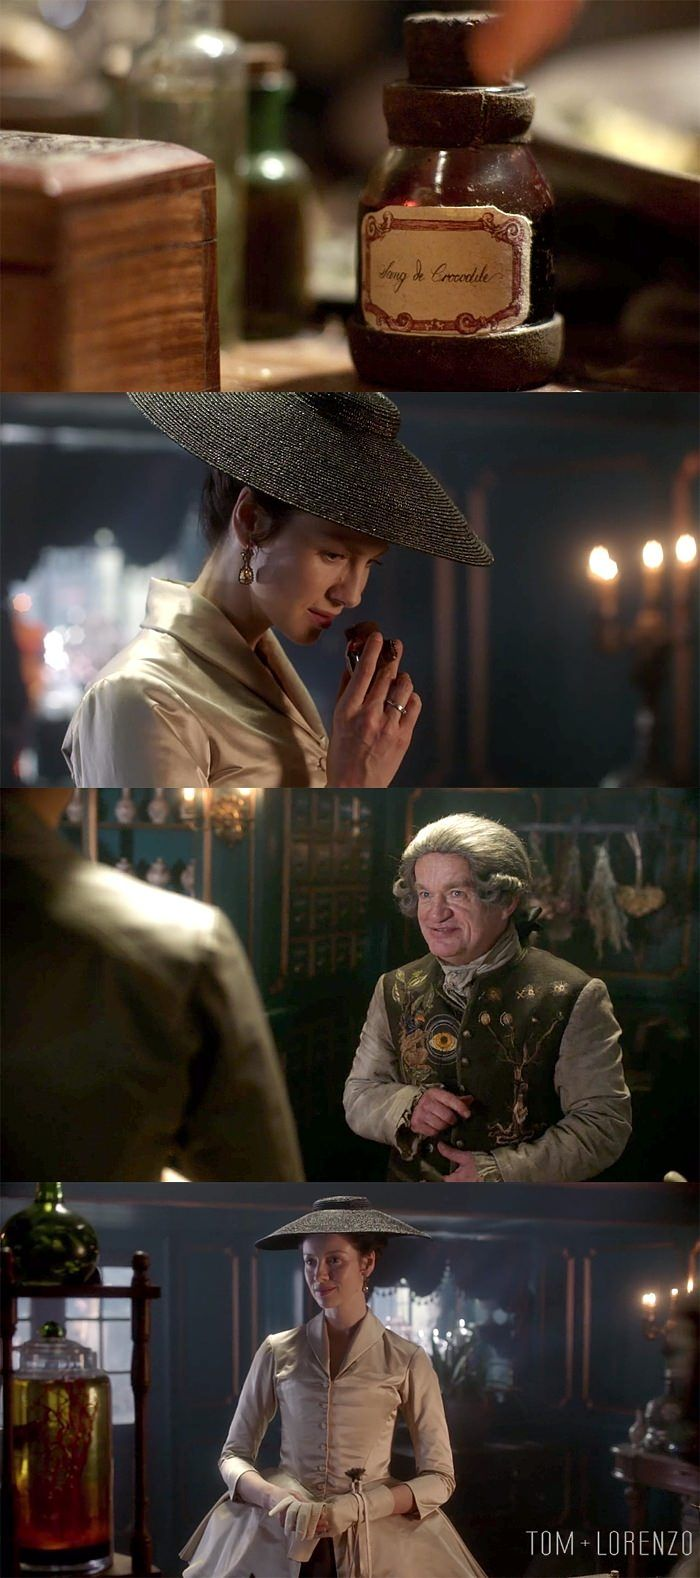 Outlander-Style-Season-2-Episode-2-TV-Series-Starz-Costumes-By-Terry-Dresbach-Tom-Lorenzo-Site (3)